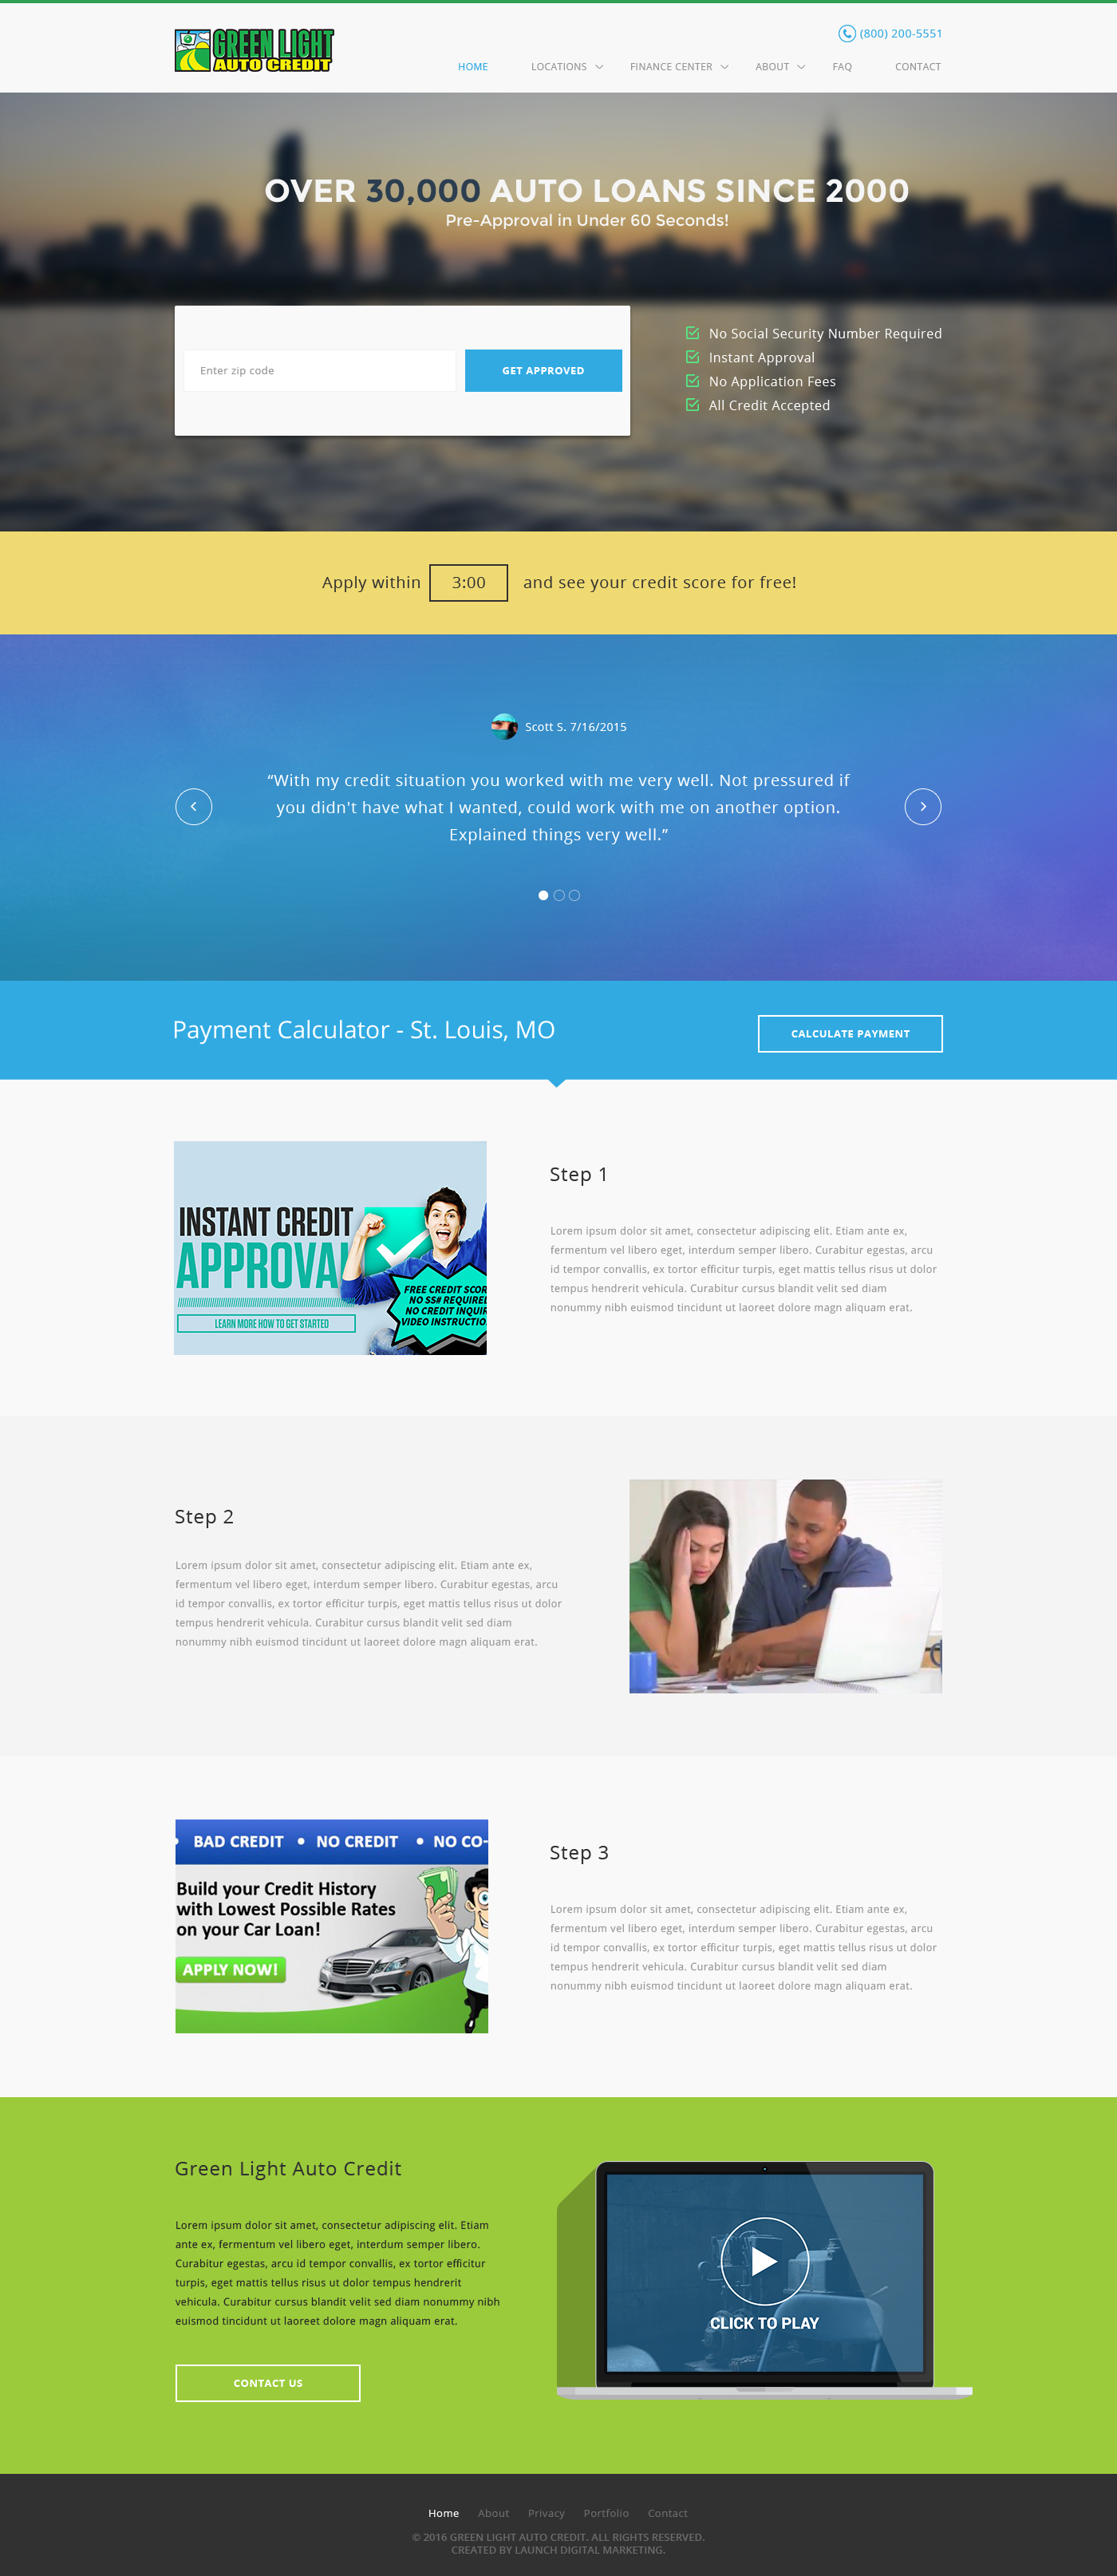 Modern Bold Web Design for Green Light Auto Credit by